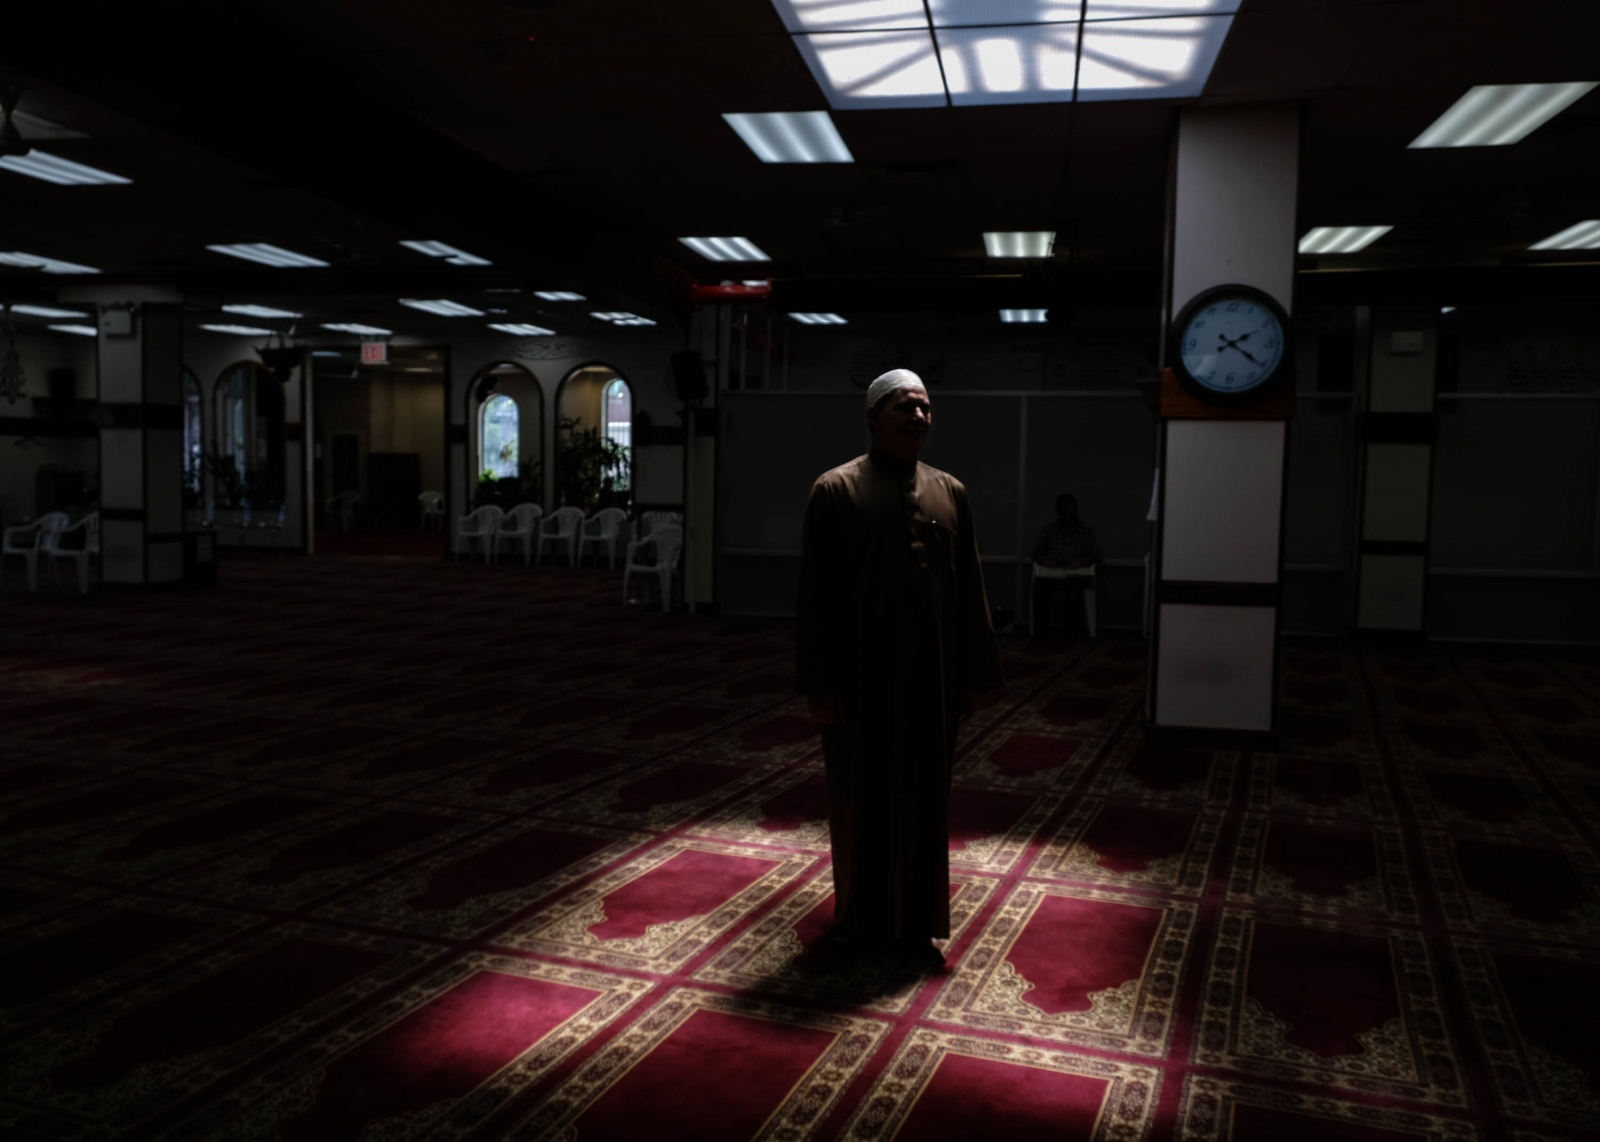 """Reyad Ghali, 48, the imam of Beit El-Maqdis Islamic Center of Bay Ridge, says that Muslim students """"should be encouraged by Allah's reward for remaining steadfast in practice despite hardships that may arise while fasting.  Shot for """" For Muslim Students, an Early Ramadan Means Fasting During Exams.""""  Gabriella N. Báez/NYT Institute"""